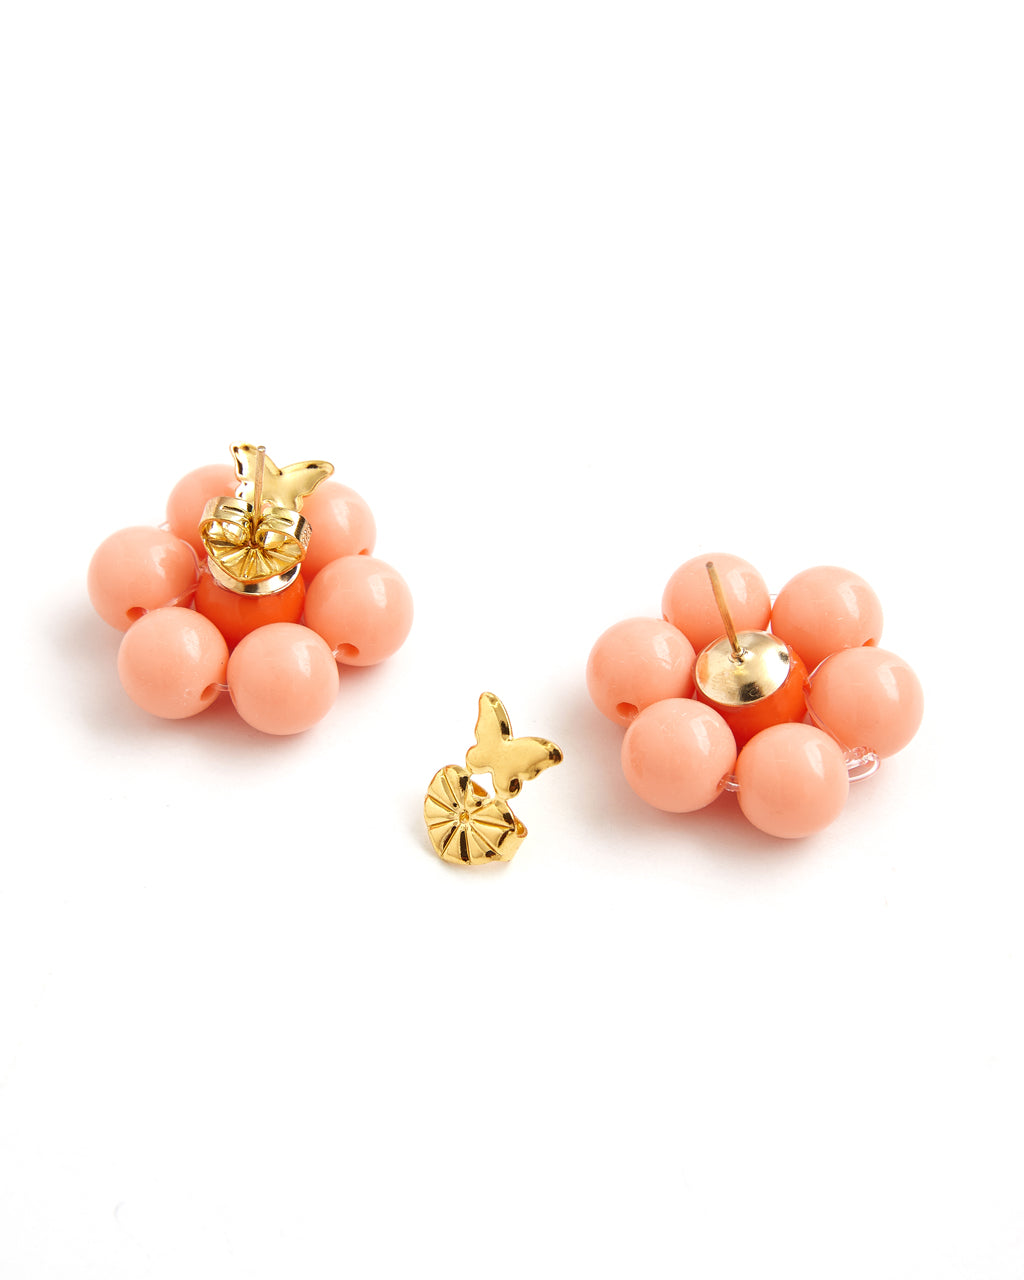 back view of peach beaded earrings with orange center